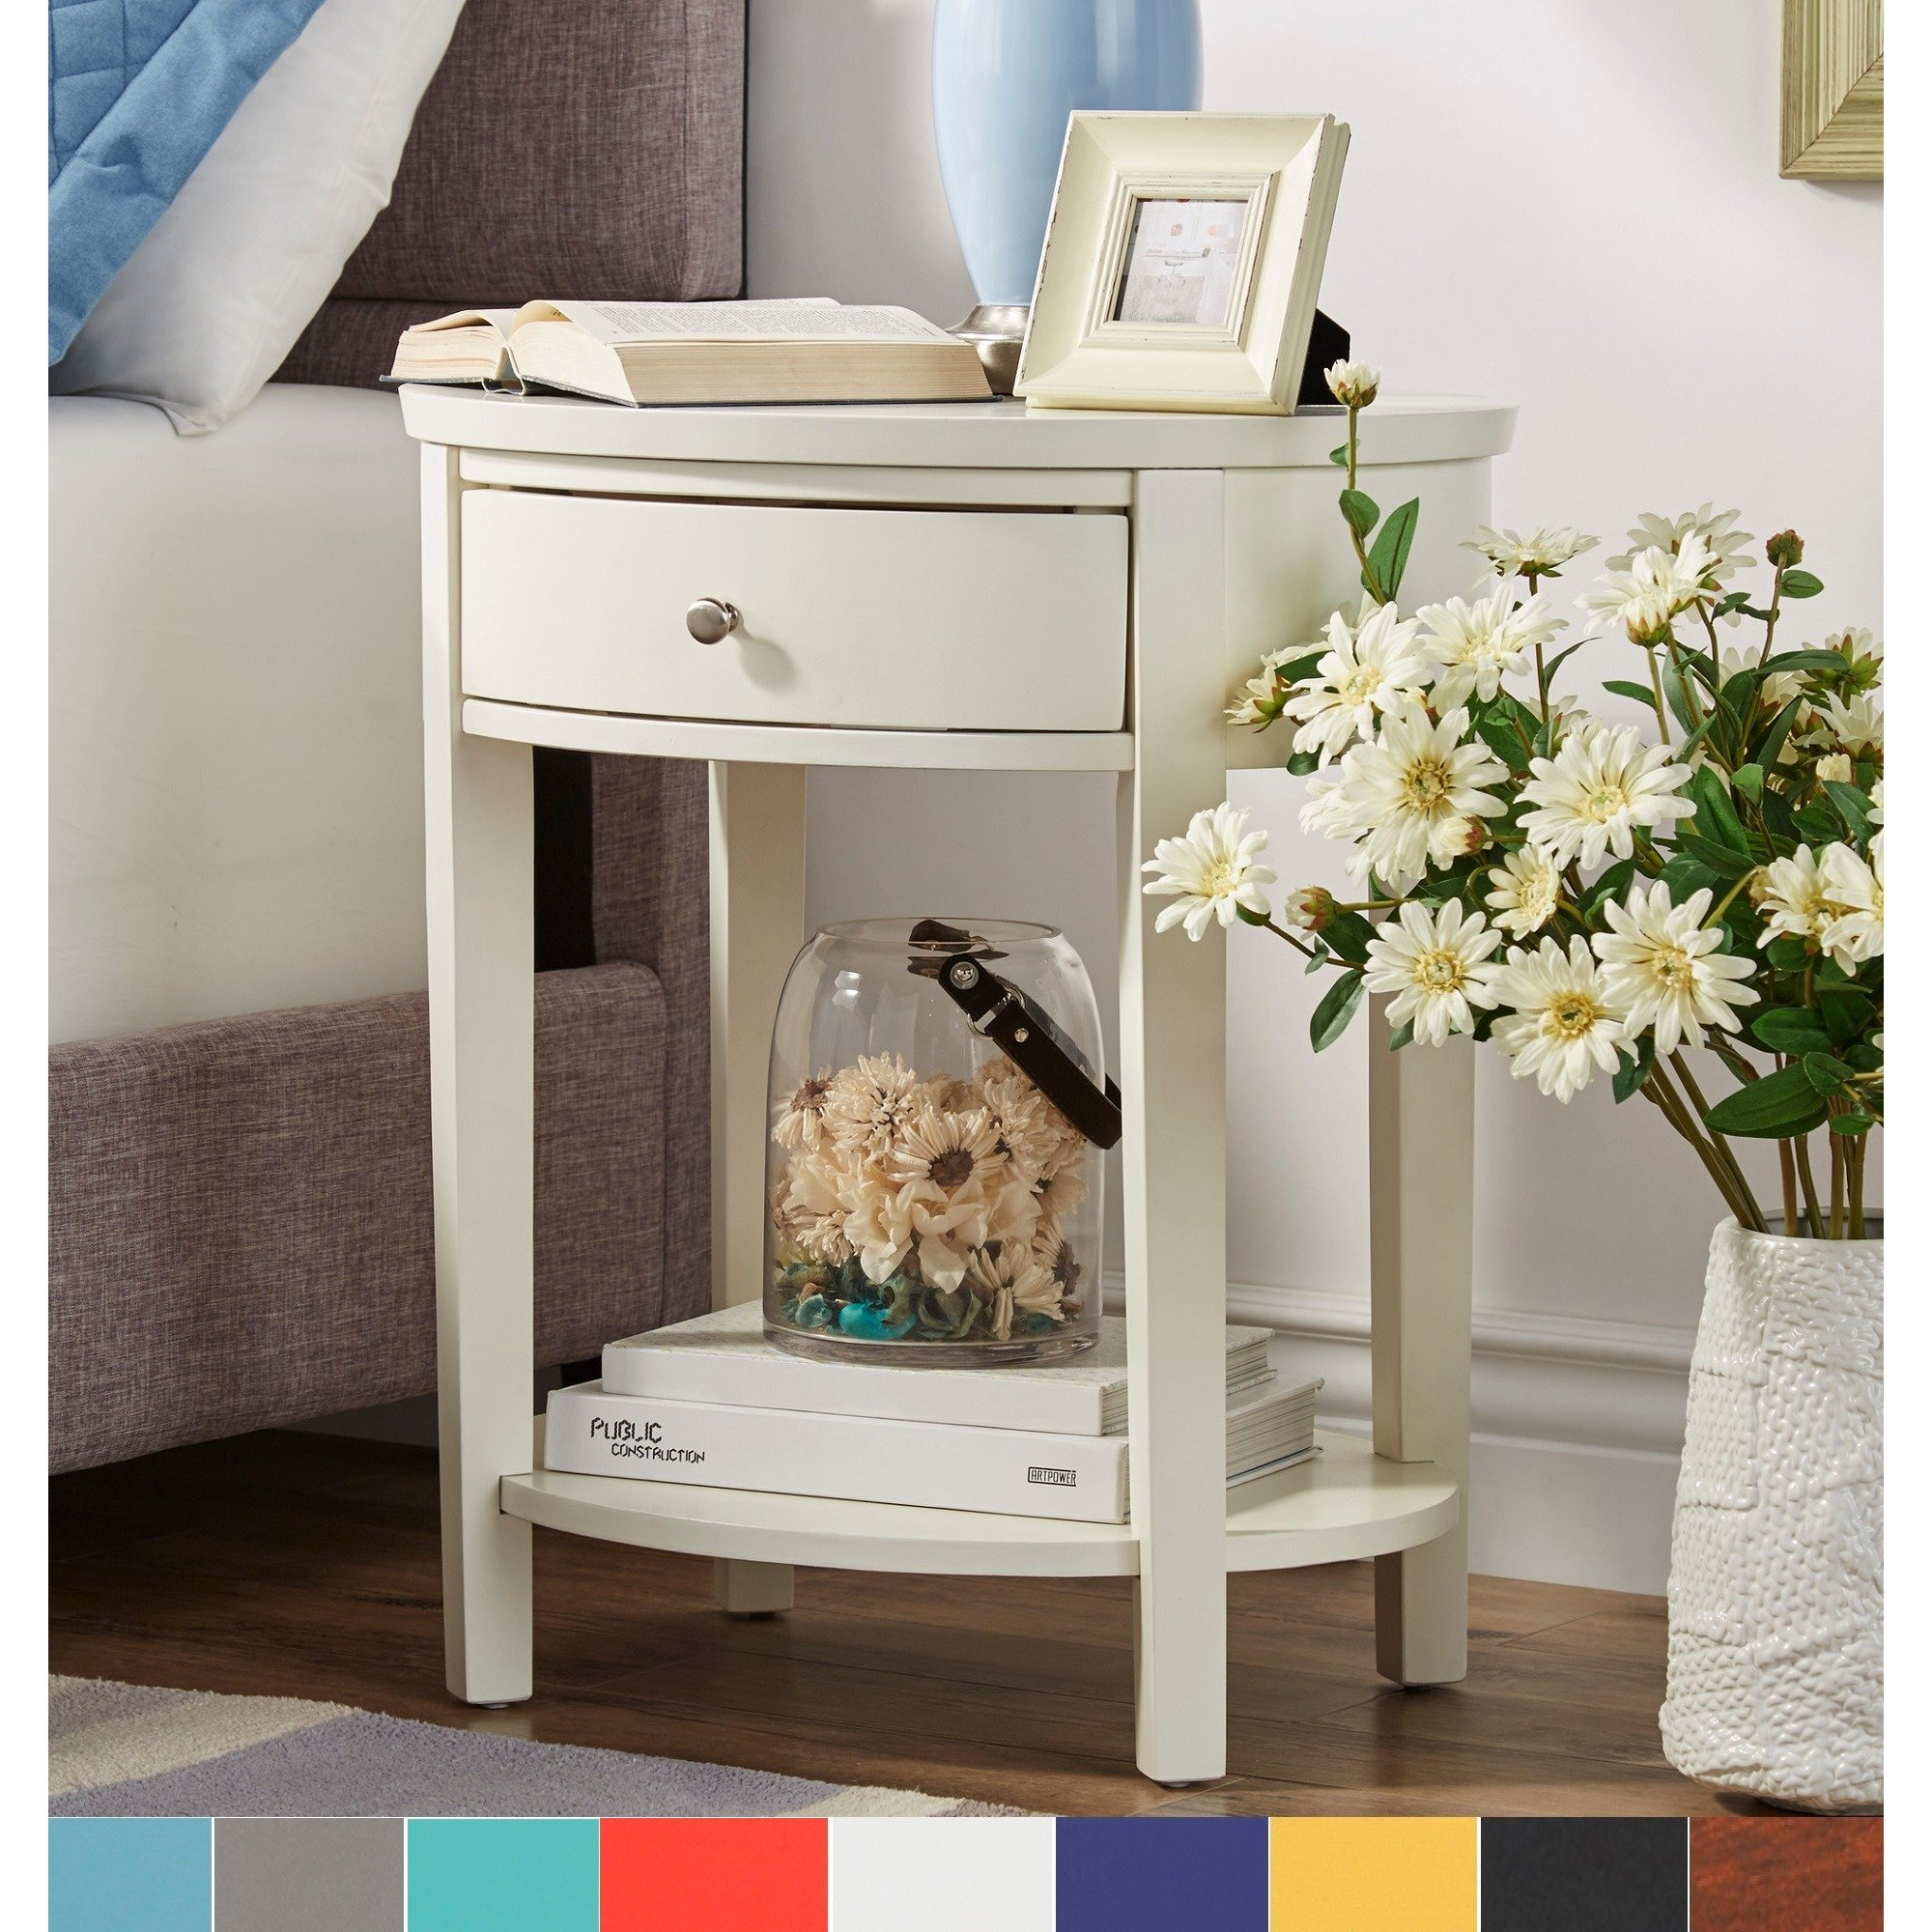 fillmore drawer oval wood shelf accent end table inspire bold nursery half wall dining room linens drop leaf tables for small spaces round pedestal entry apartment furniture